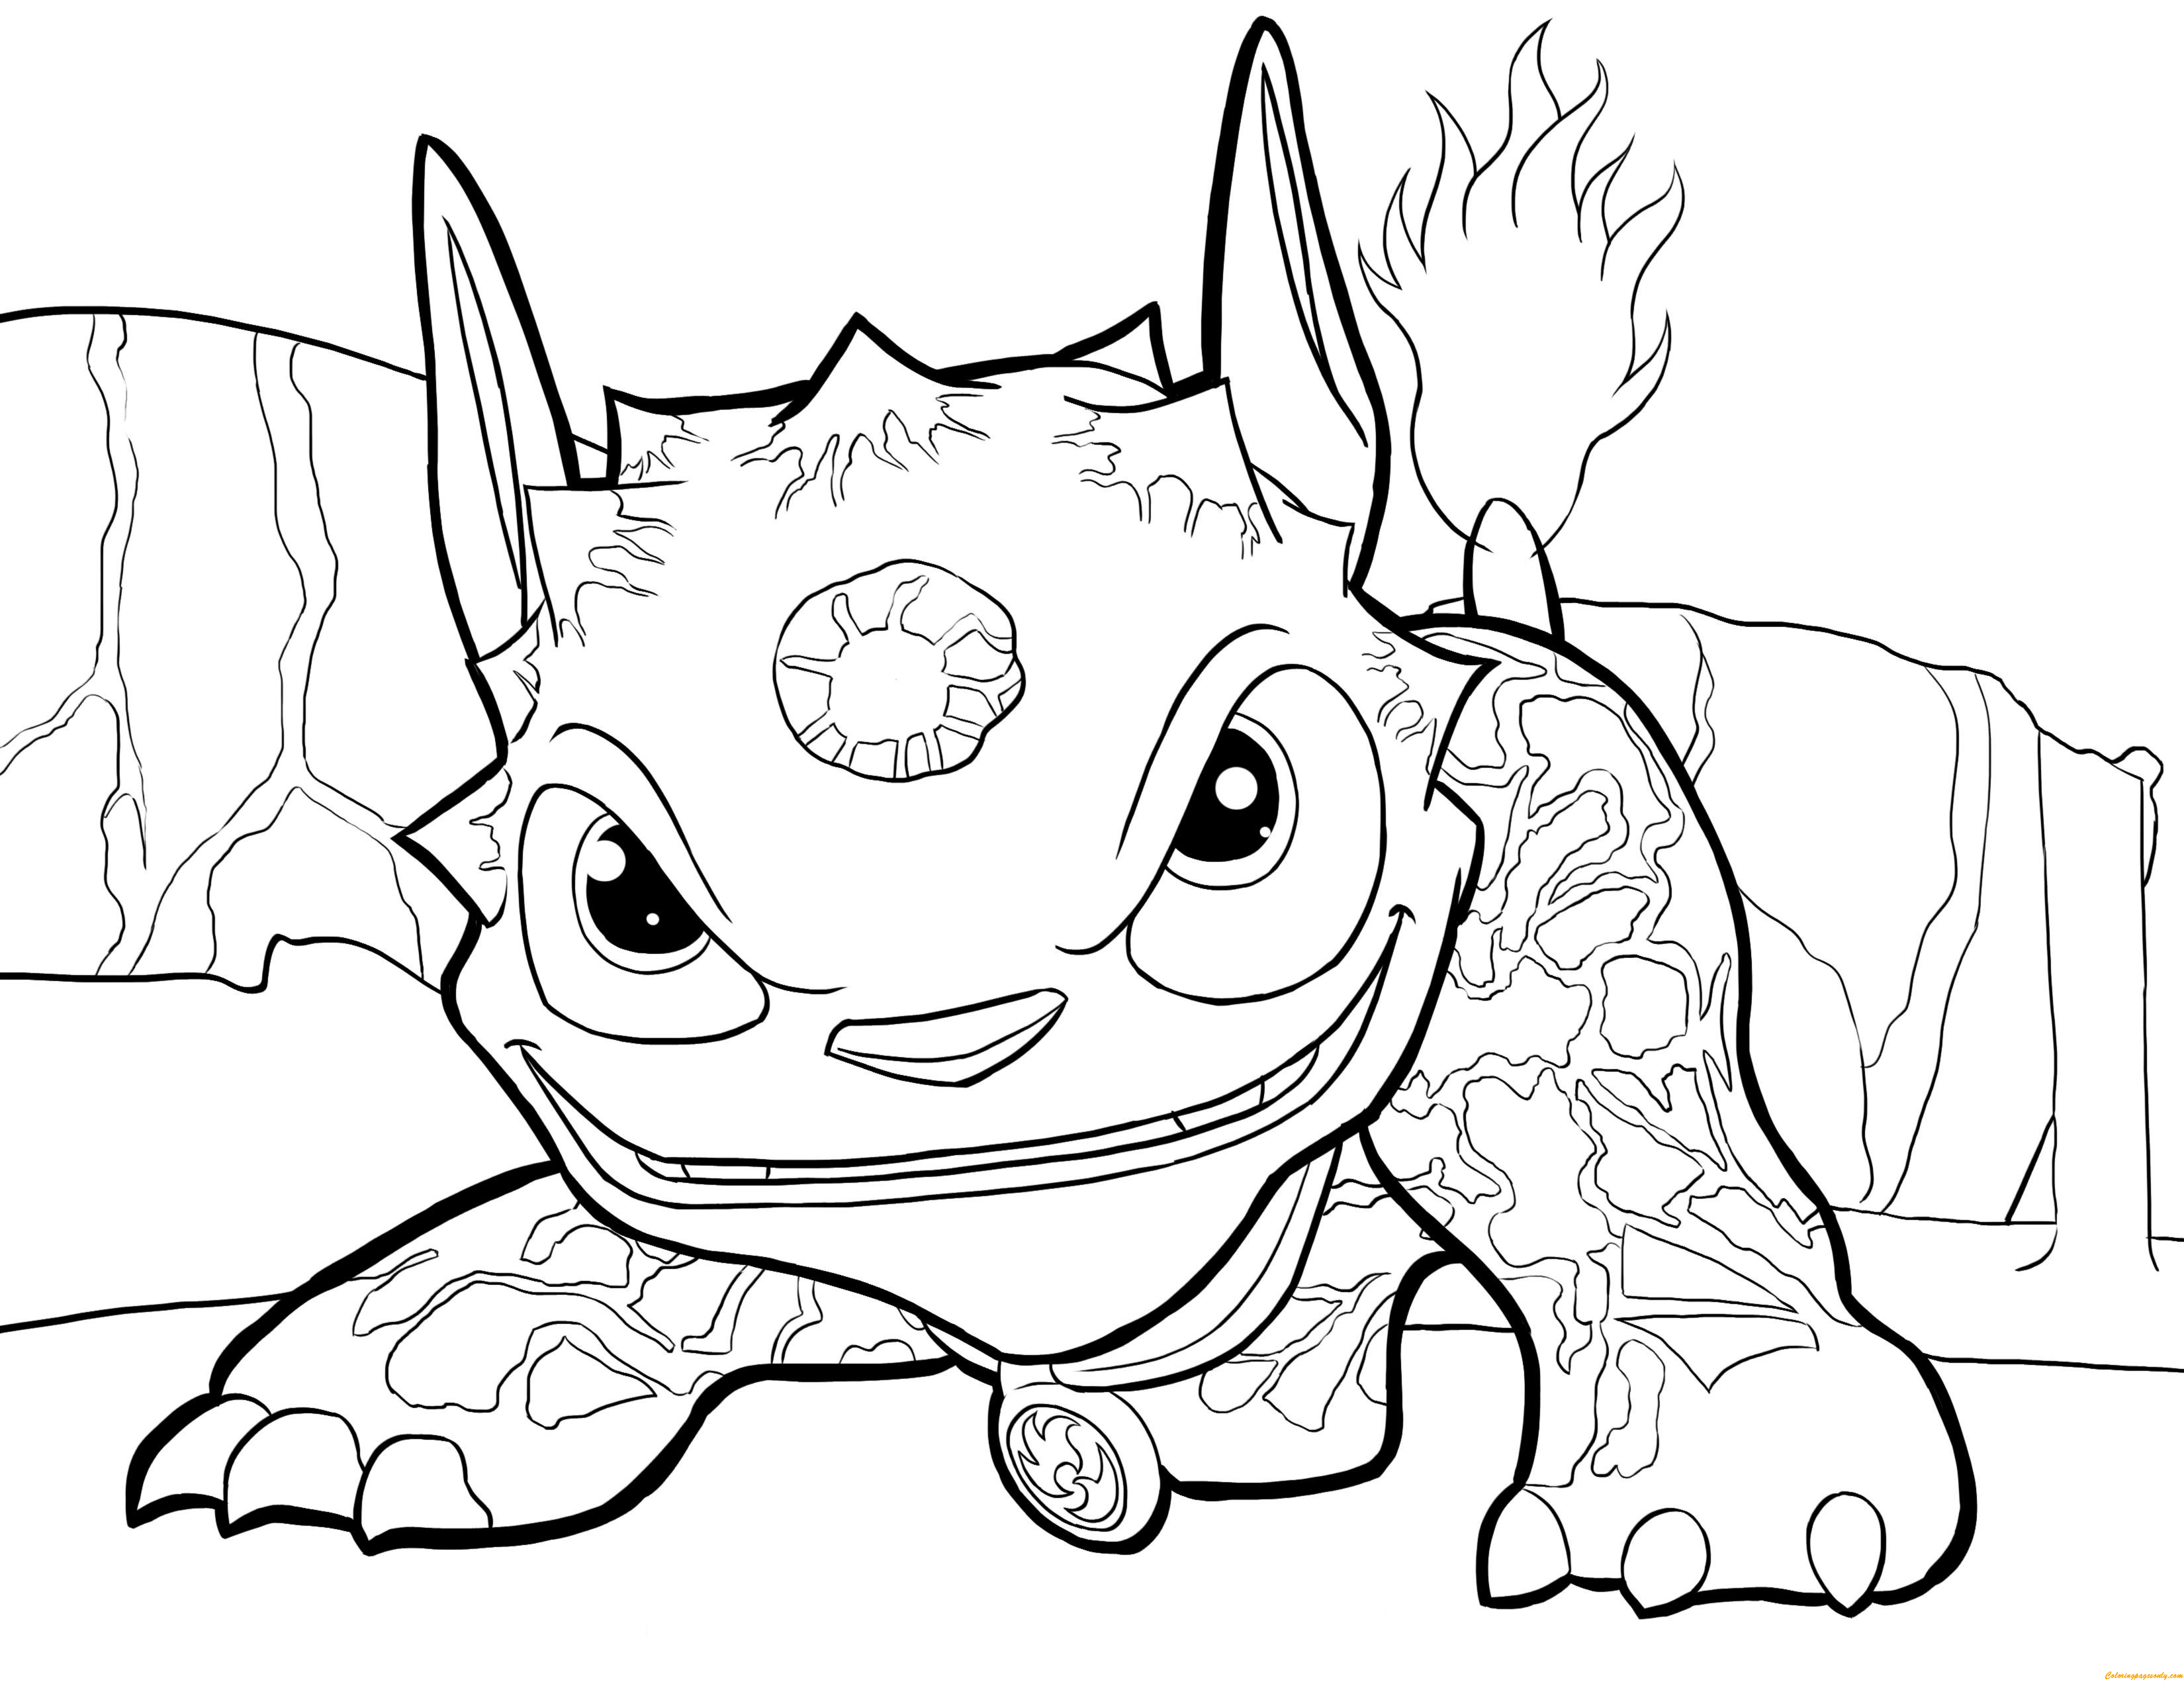 Hot Dog Skylanders Coloring Page - Free Coloring Pages Online